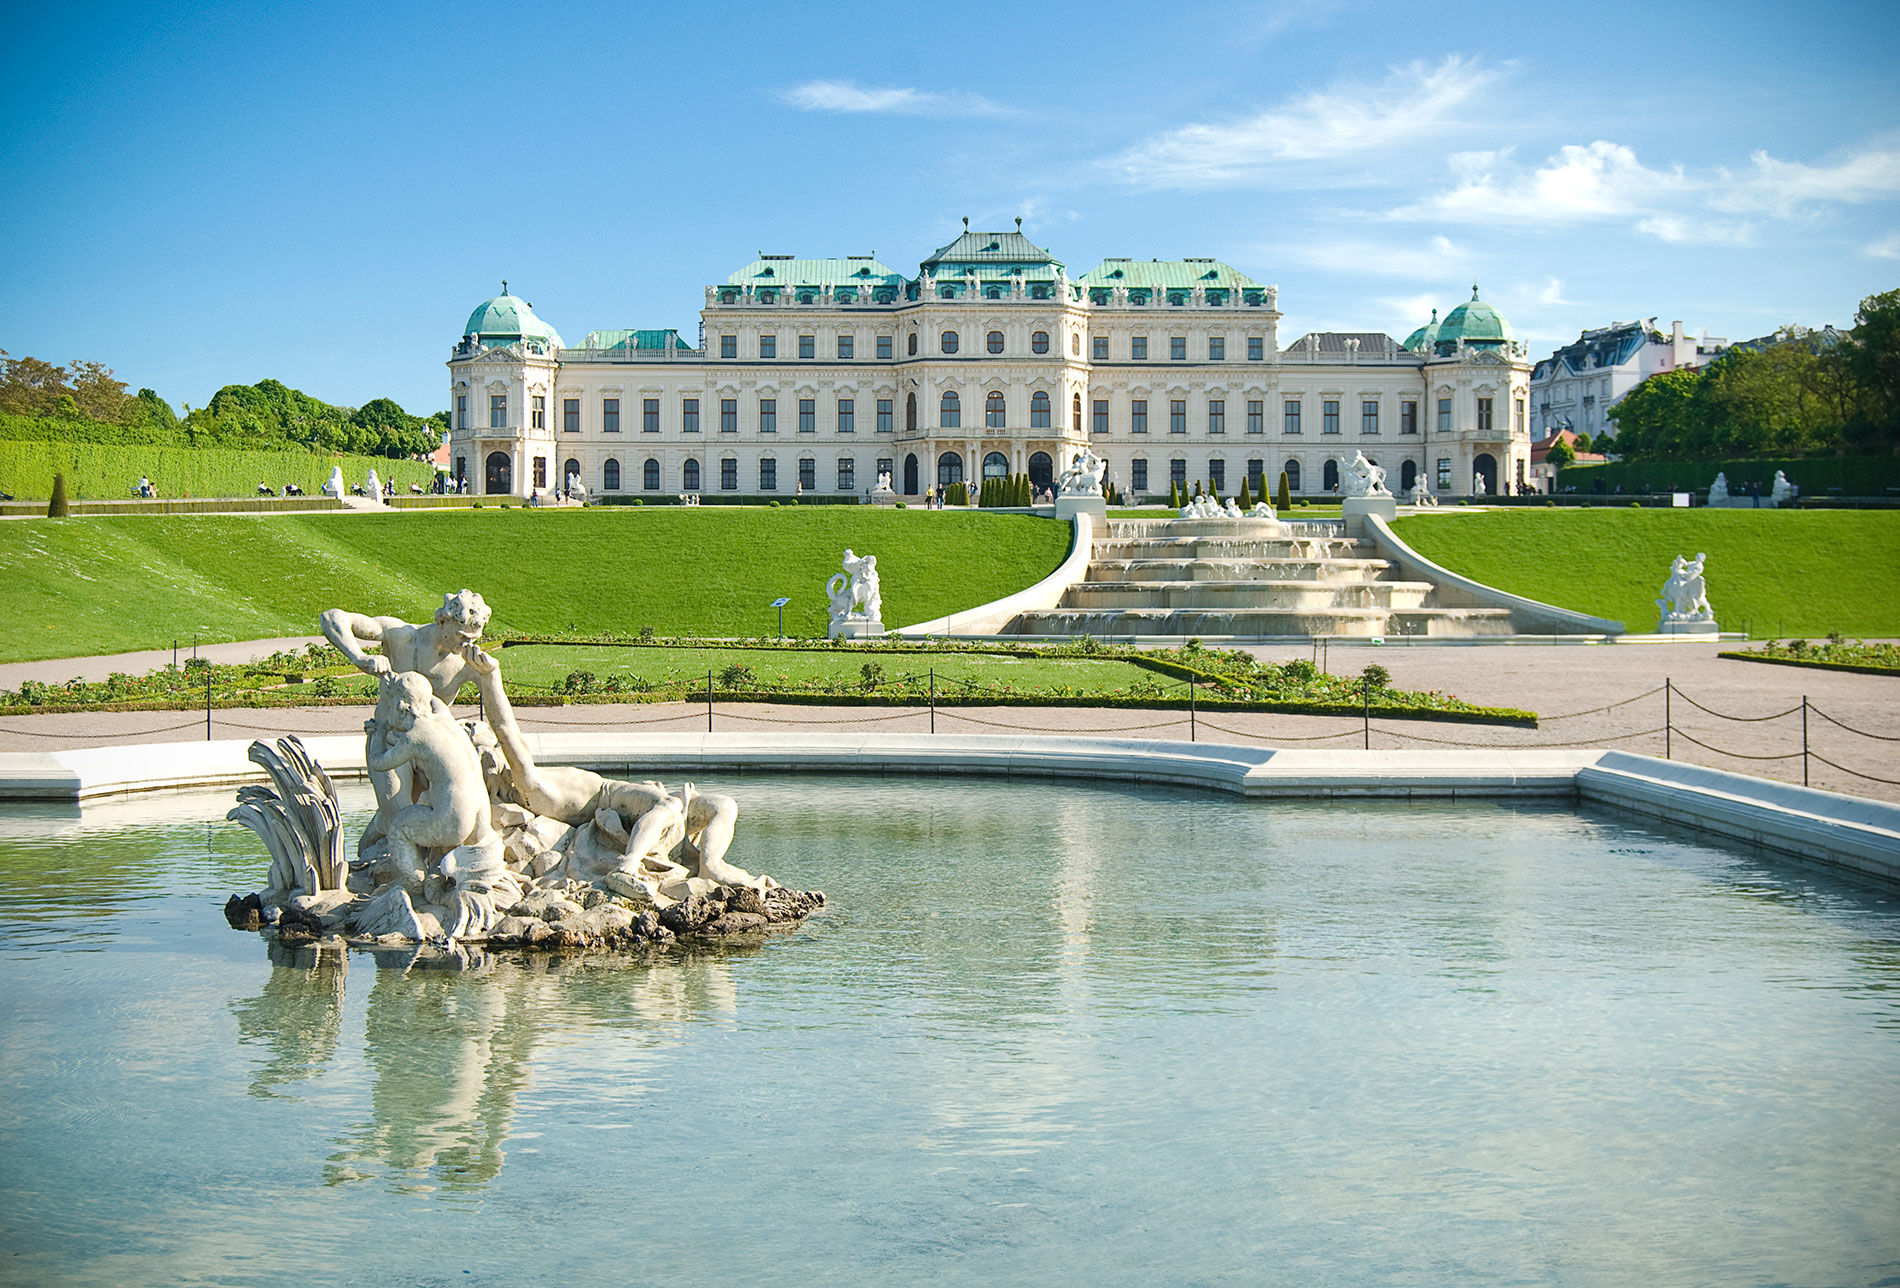 a small boat in a body of water with Belvedere, Vienna in the background